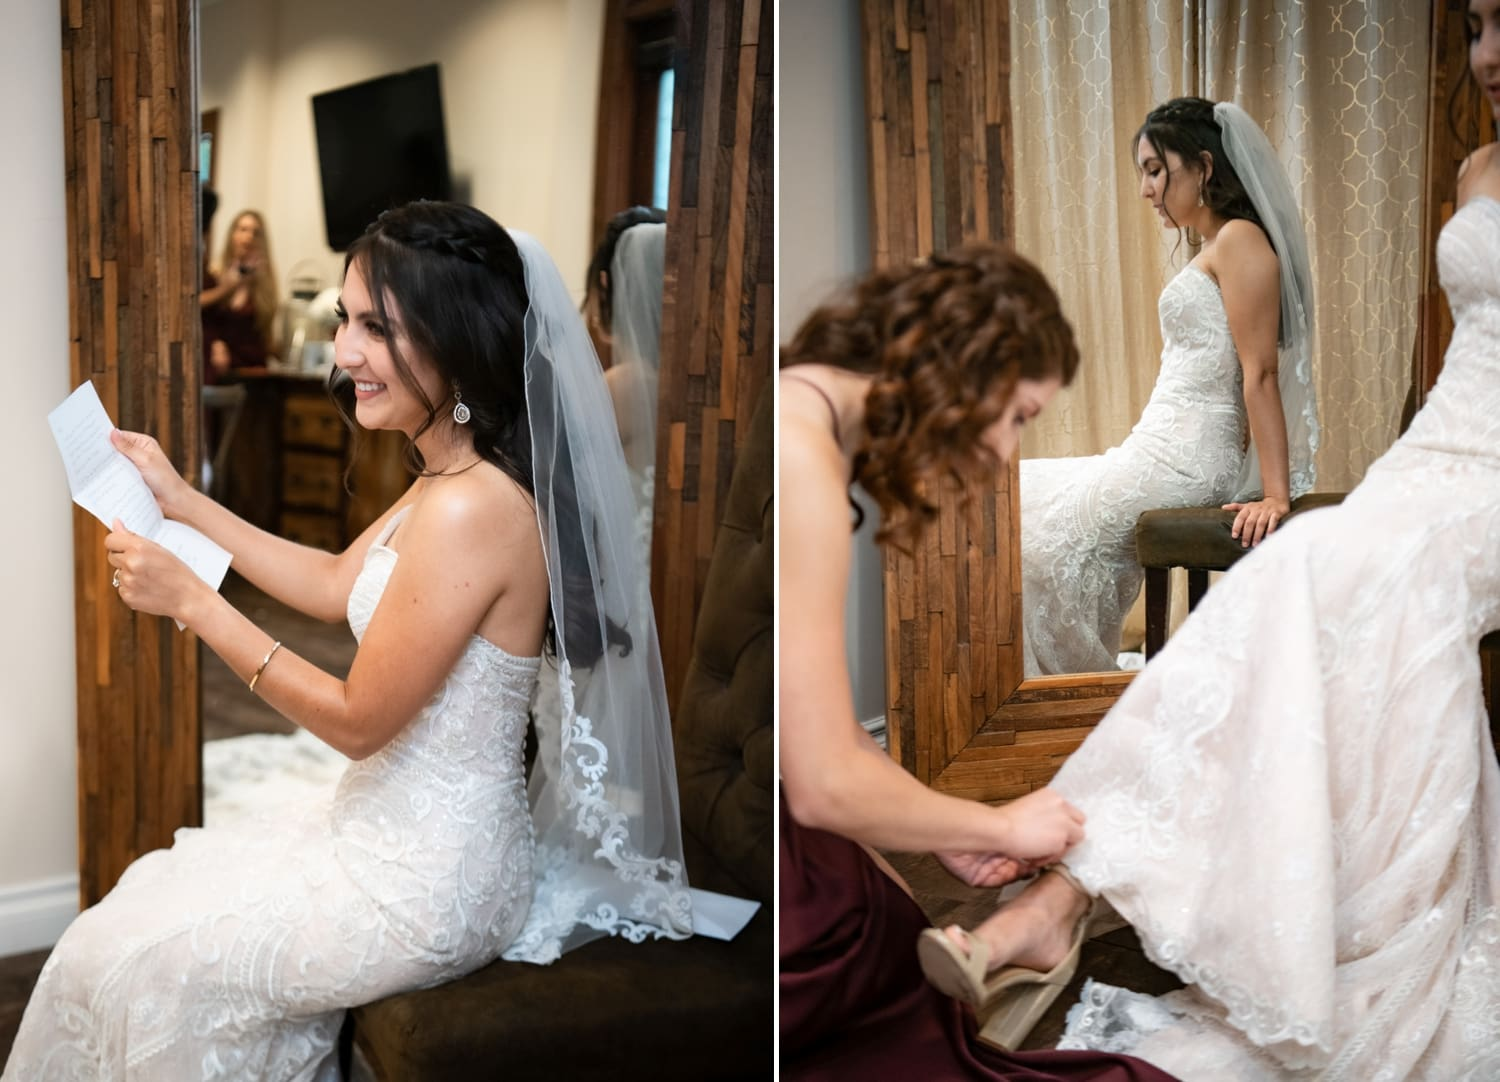 Bride reading a letter from her groom.